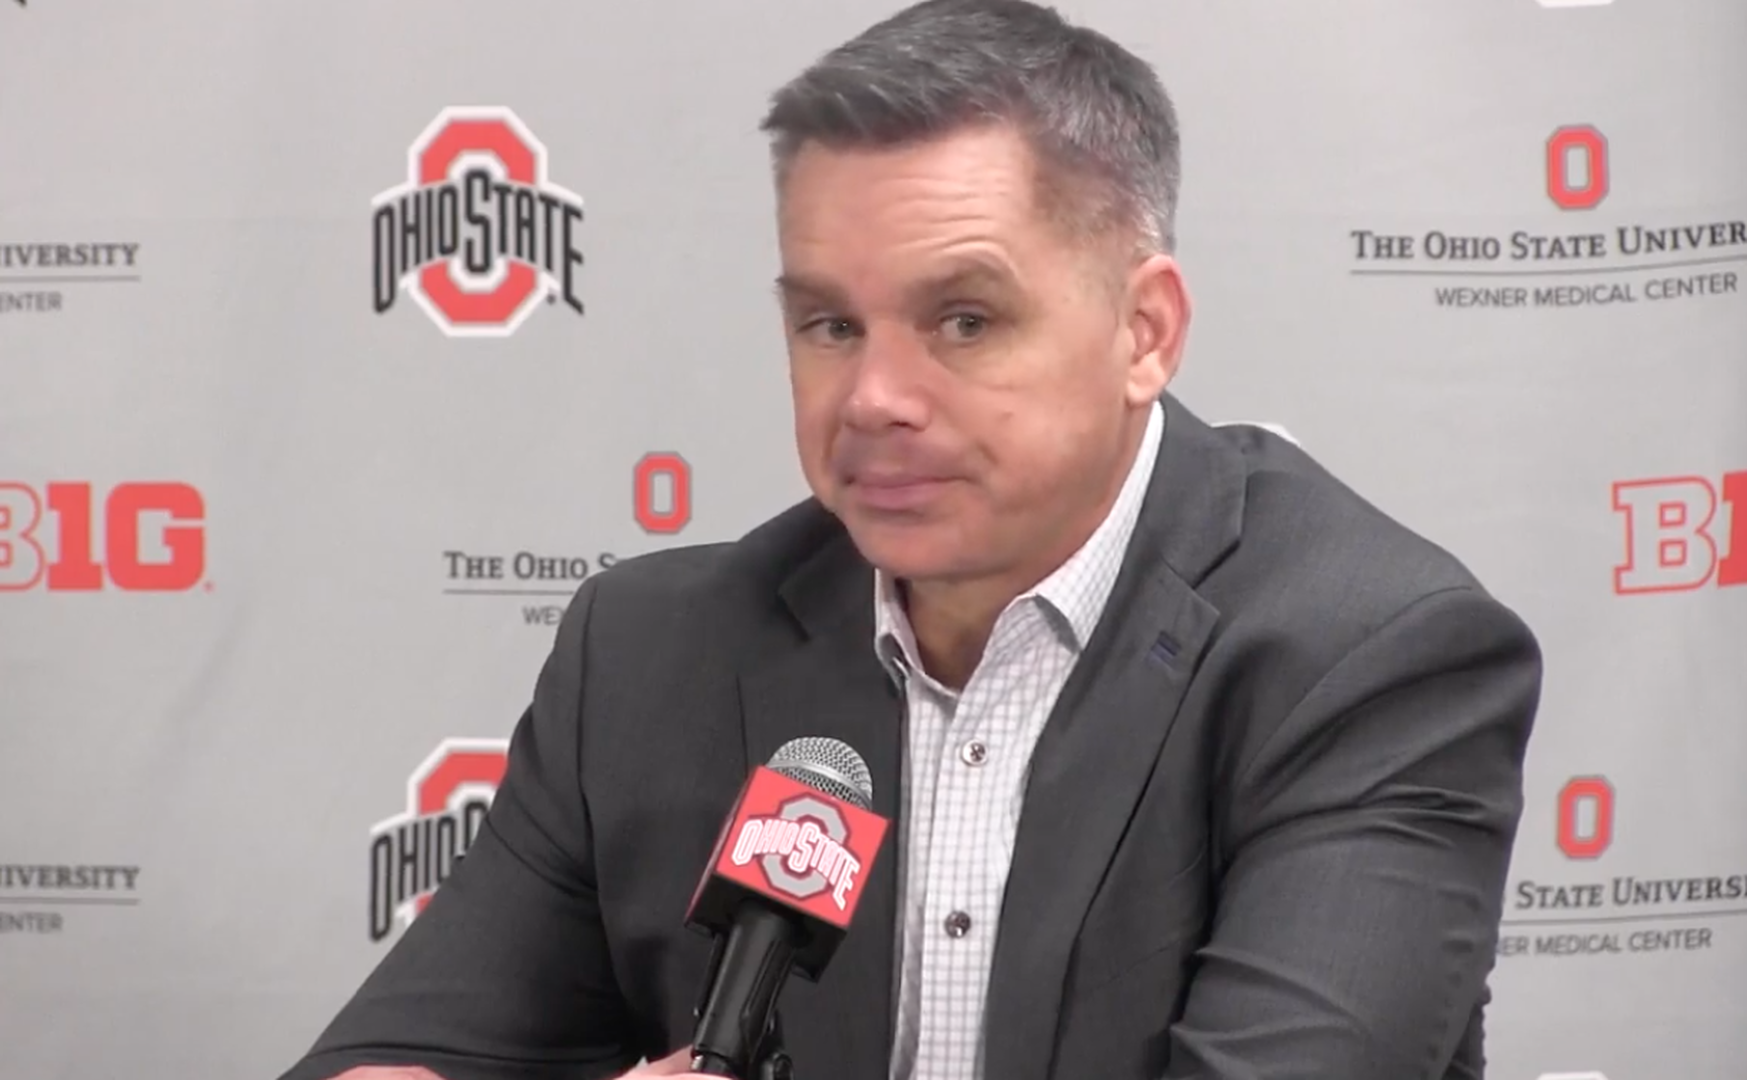 Ohio State's Chris Holtmann on pivotal foul on Kaleb Wesson against Purdue - CBSSports.com